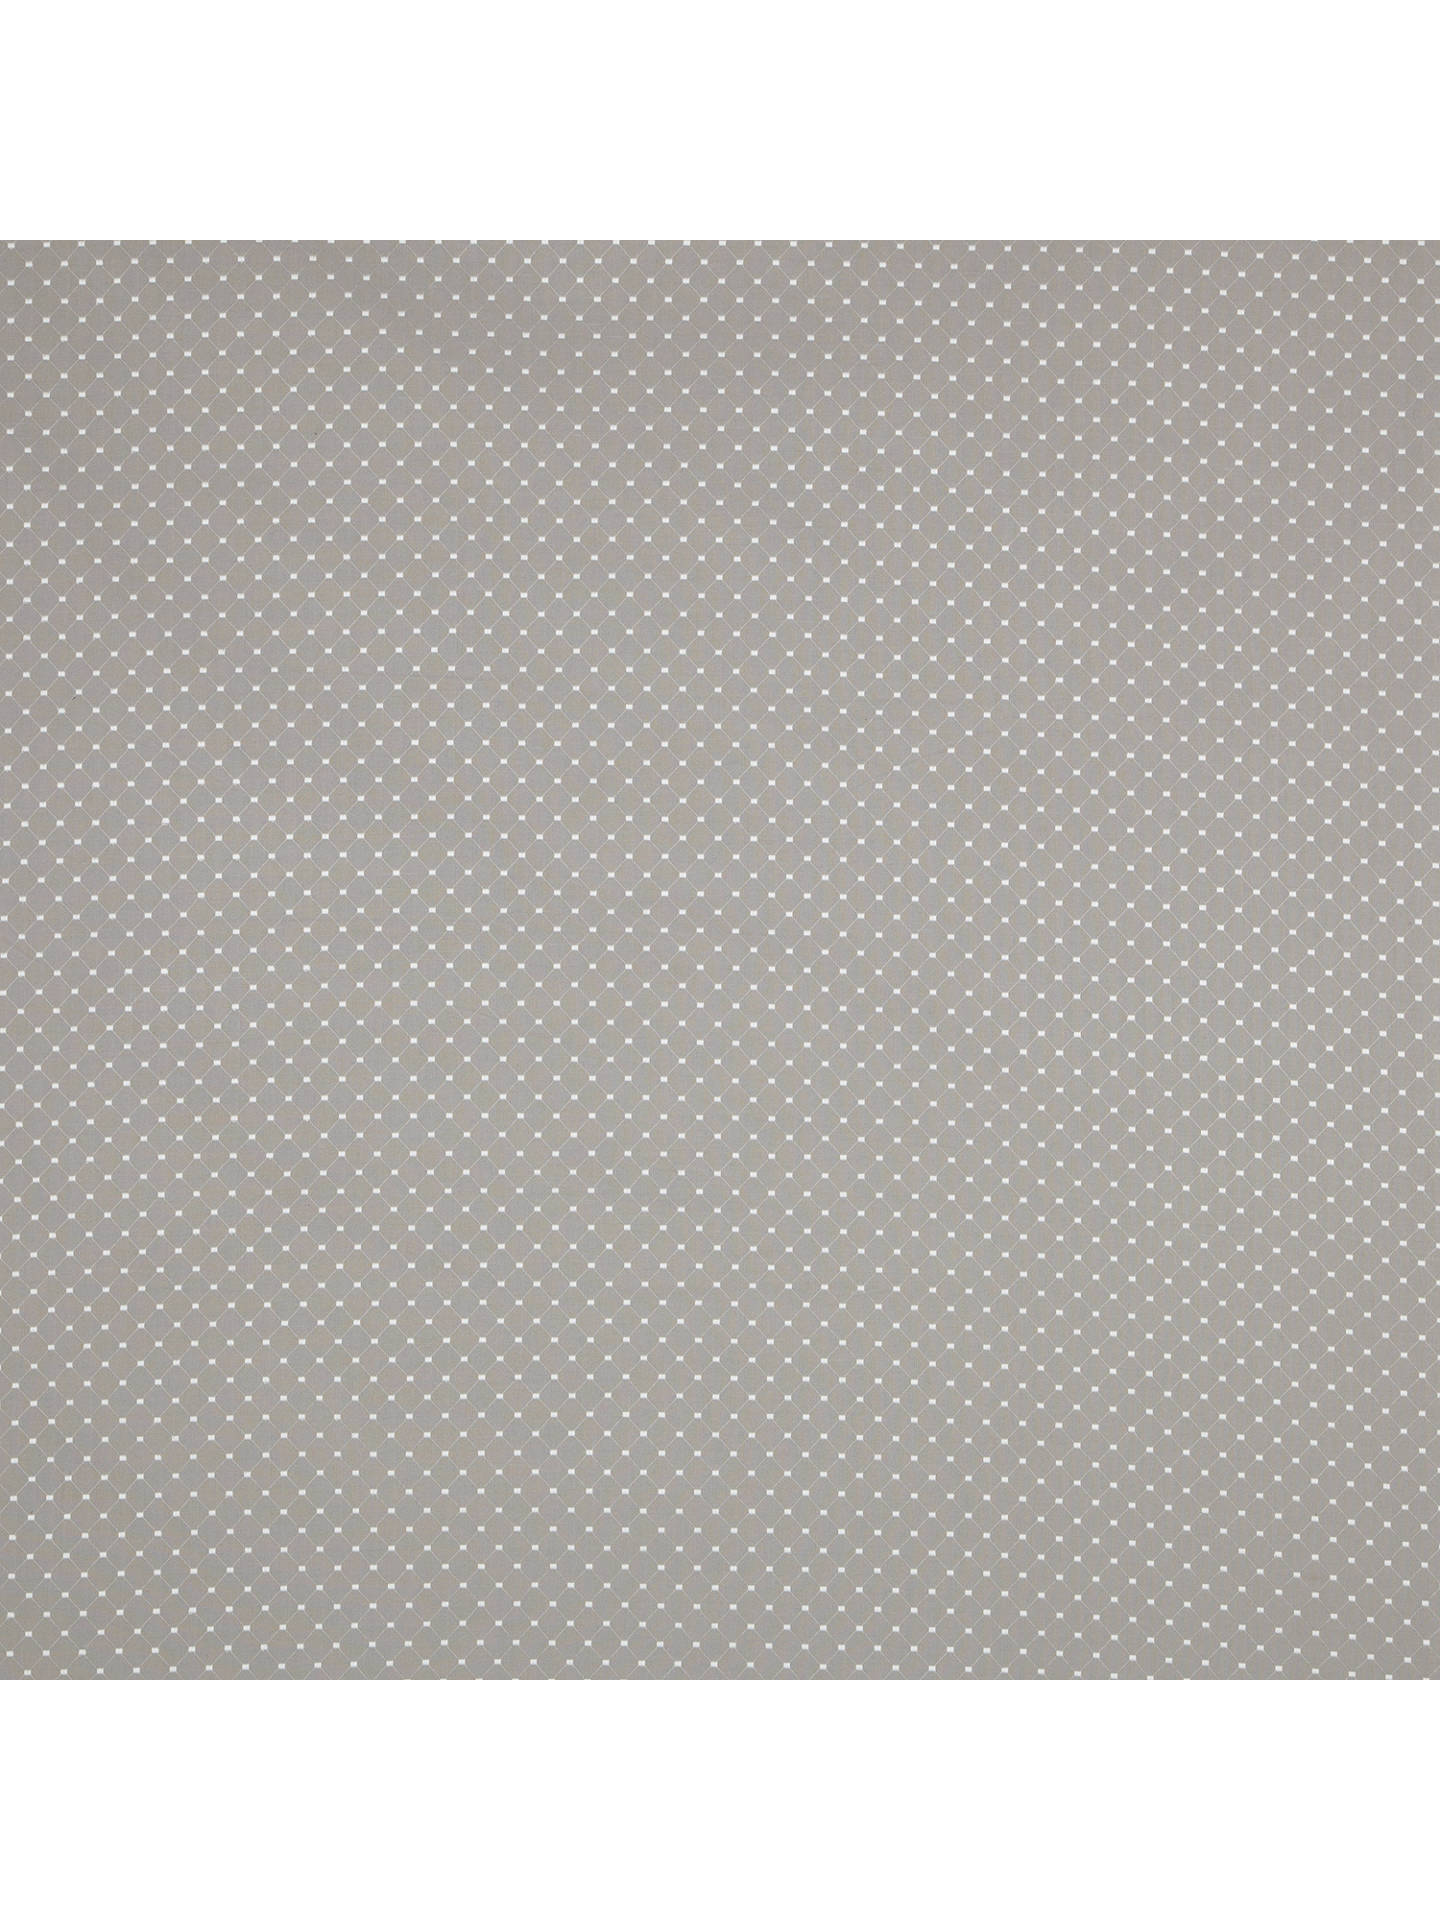 Buy John Lewis & Partners Provence Furnishing Fabric, Grey Online at johnlewis.com